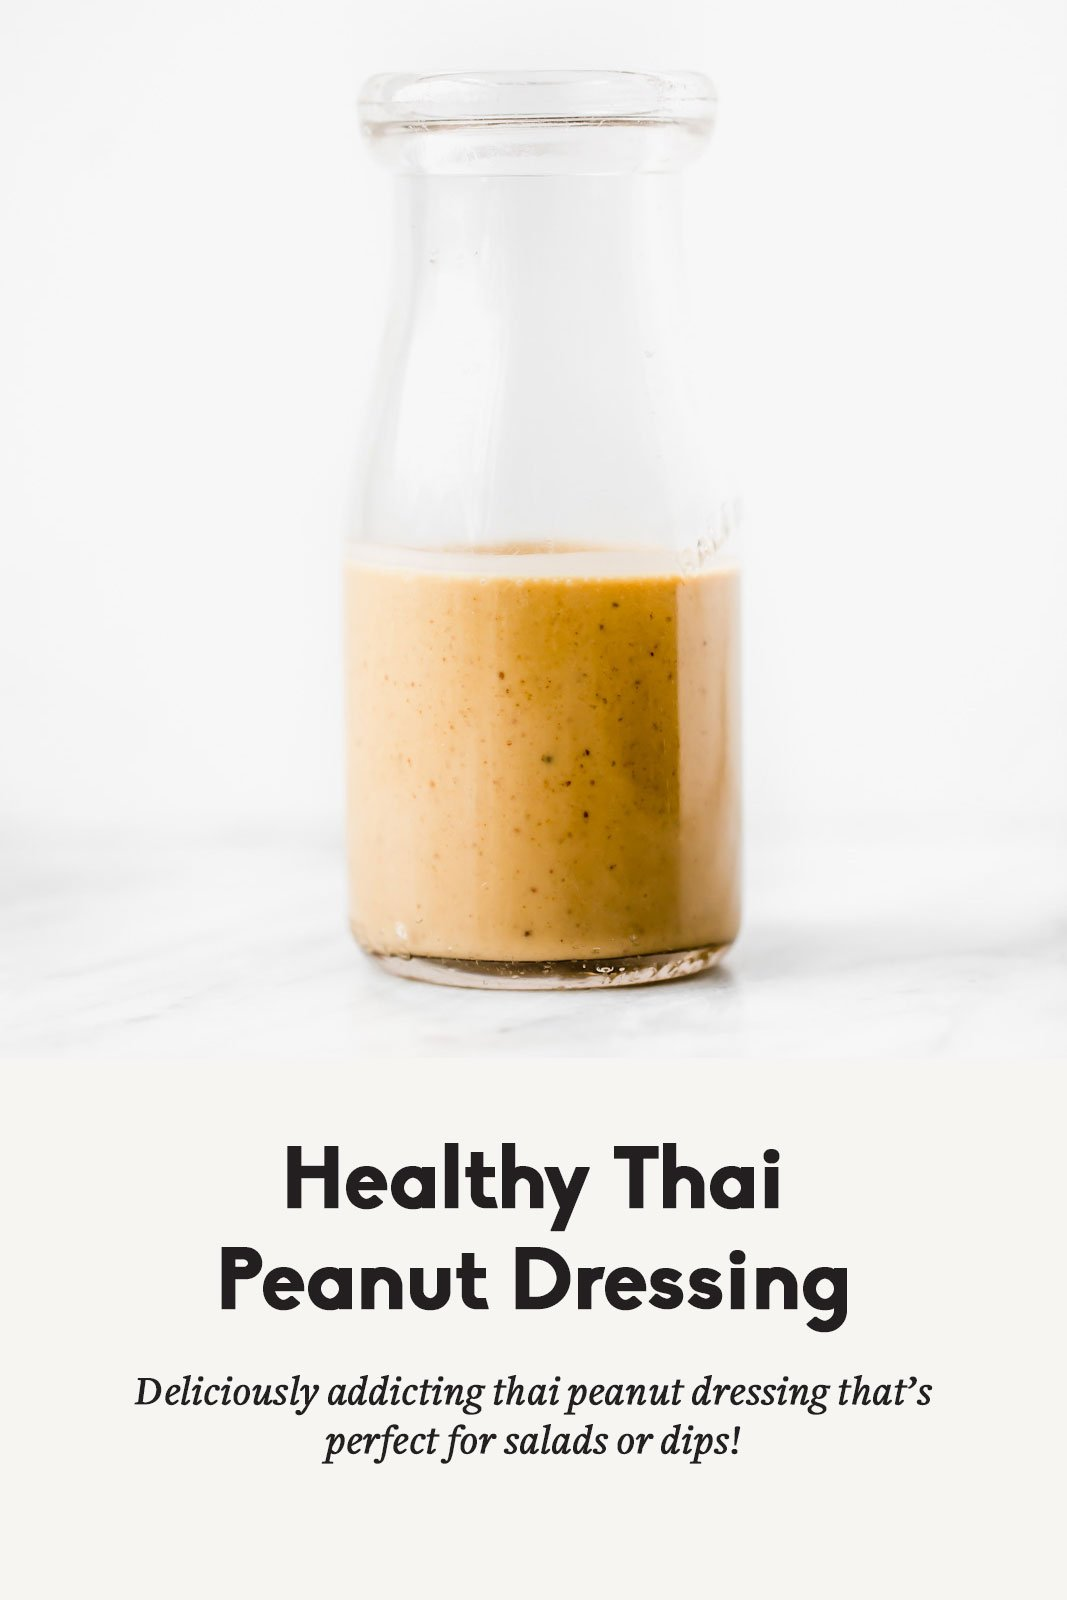 Healthy thai peanut dressing in a glass container